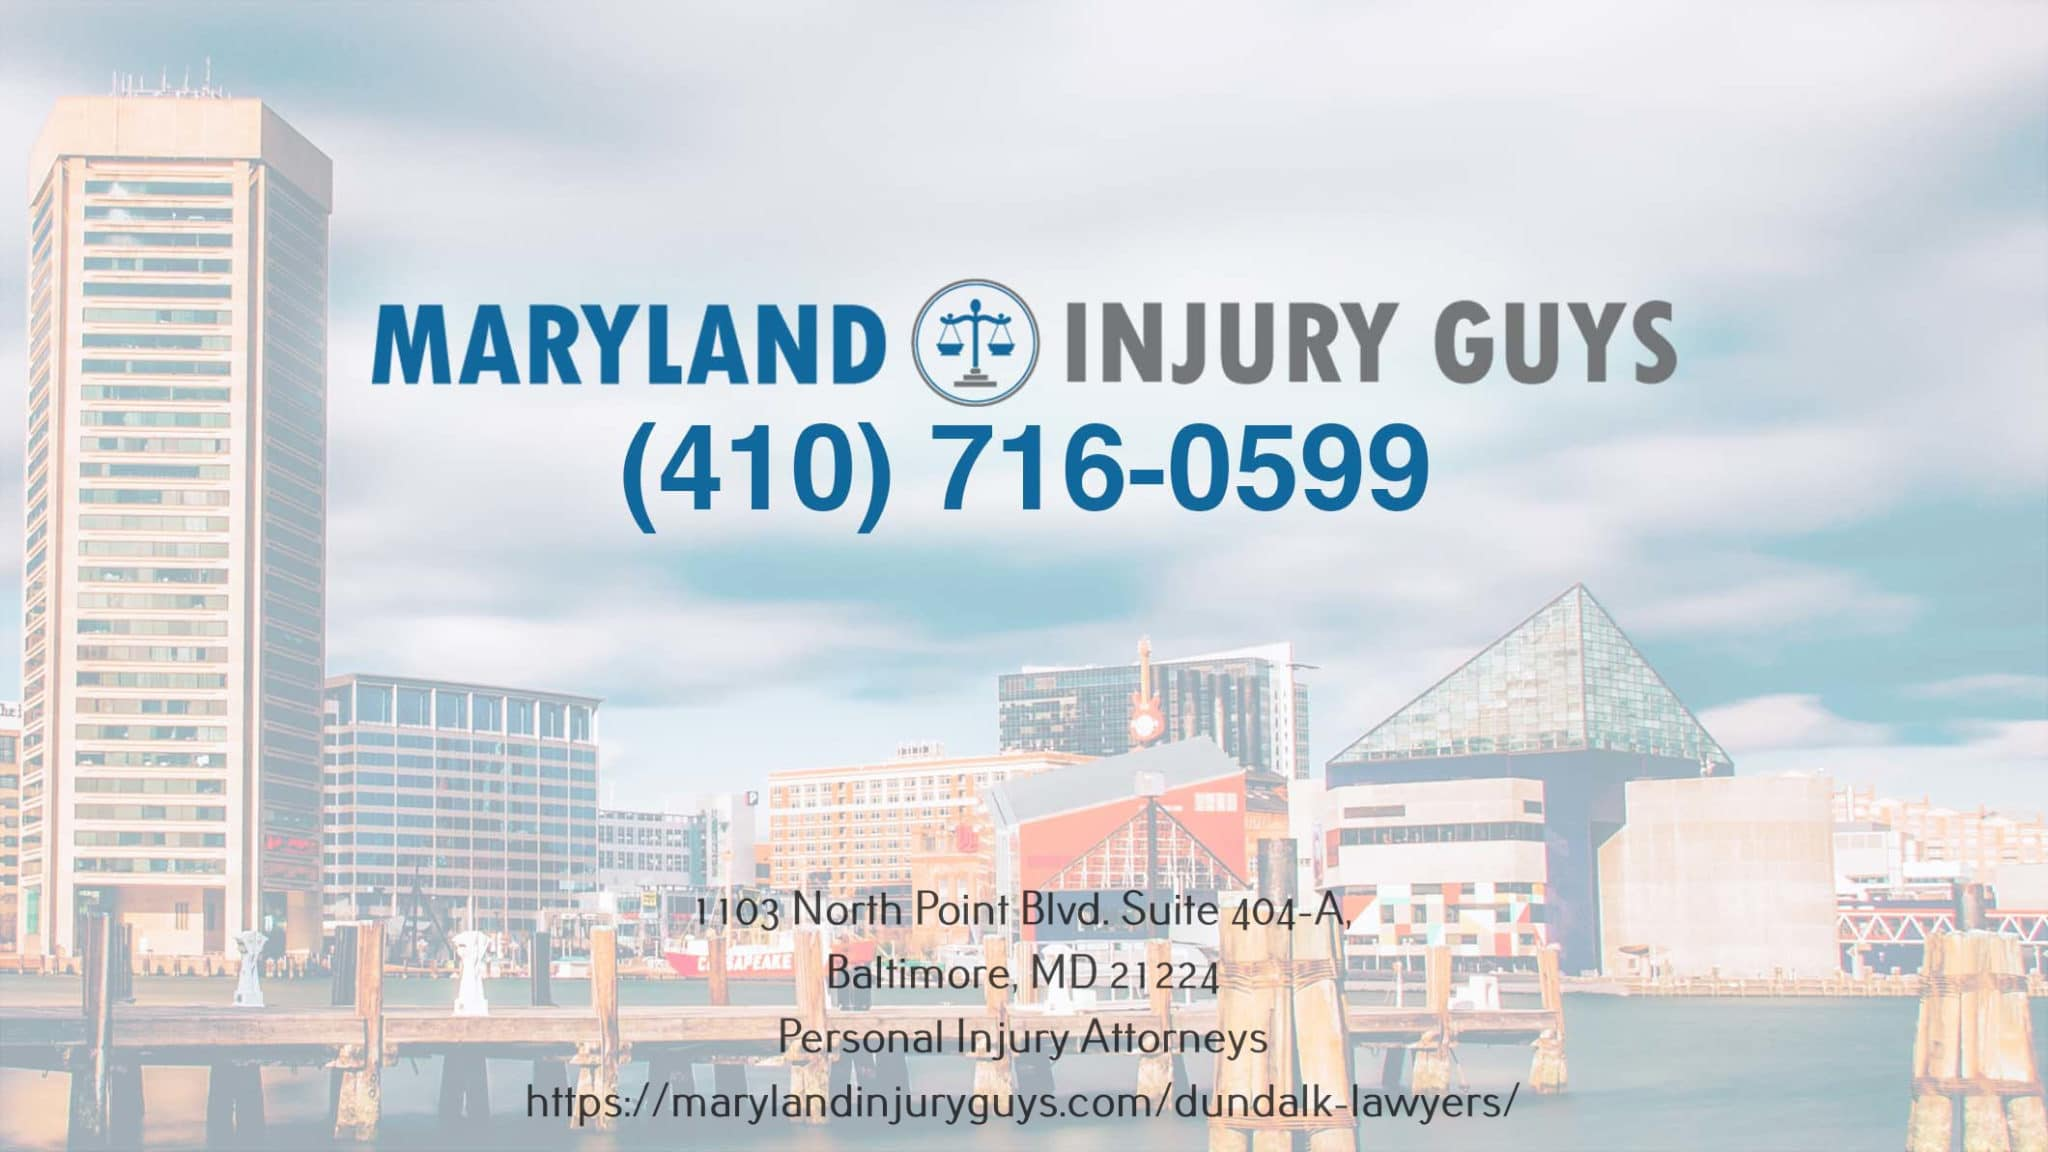 The Dundalk Personal Injury Attorneys Share The Date and Time of An Upcoming Webinar